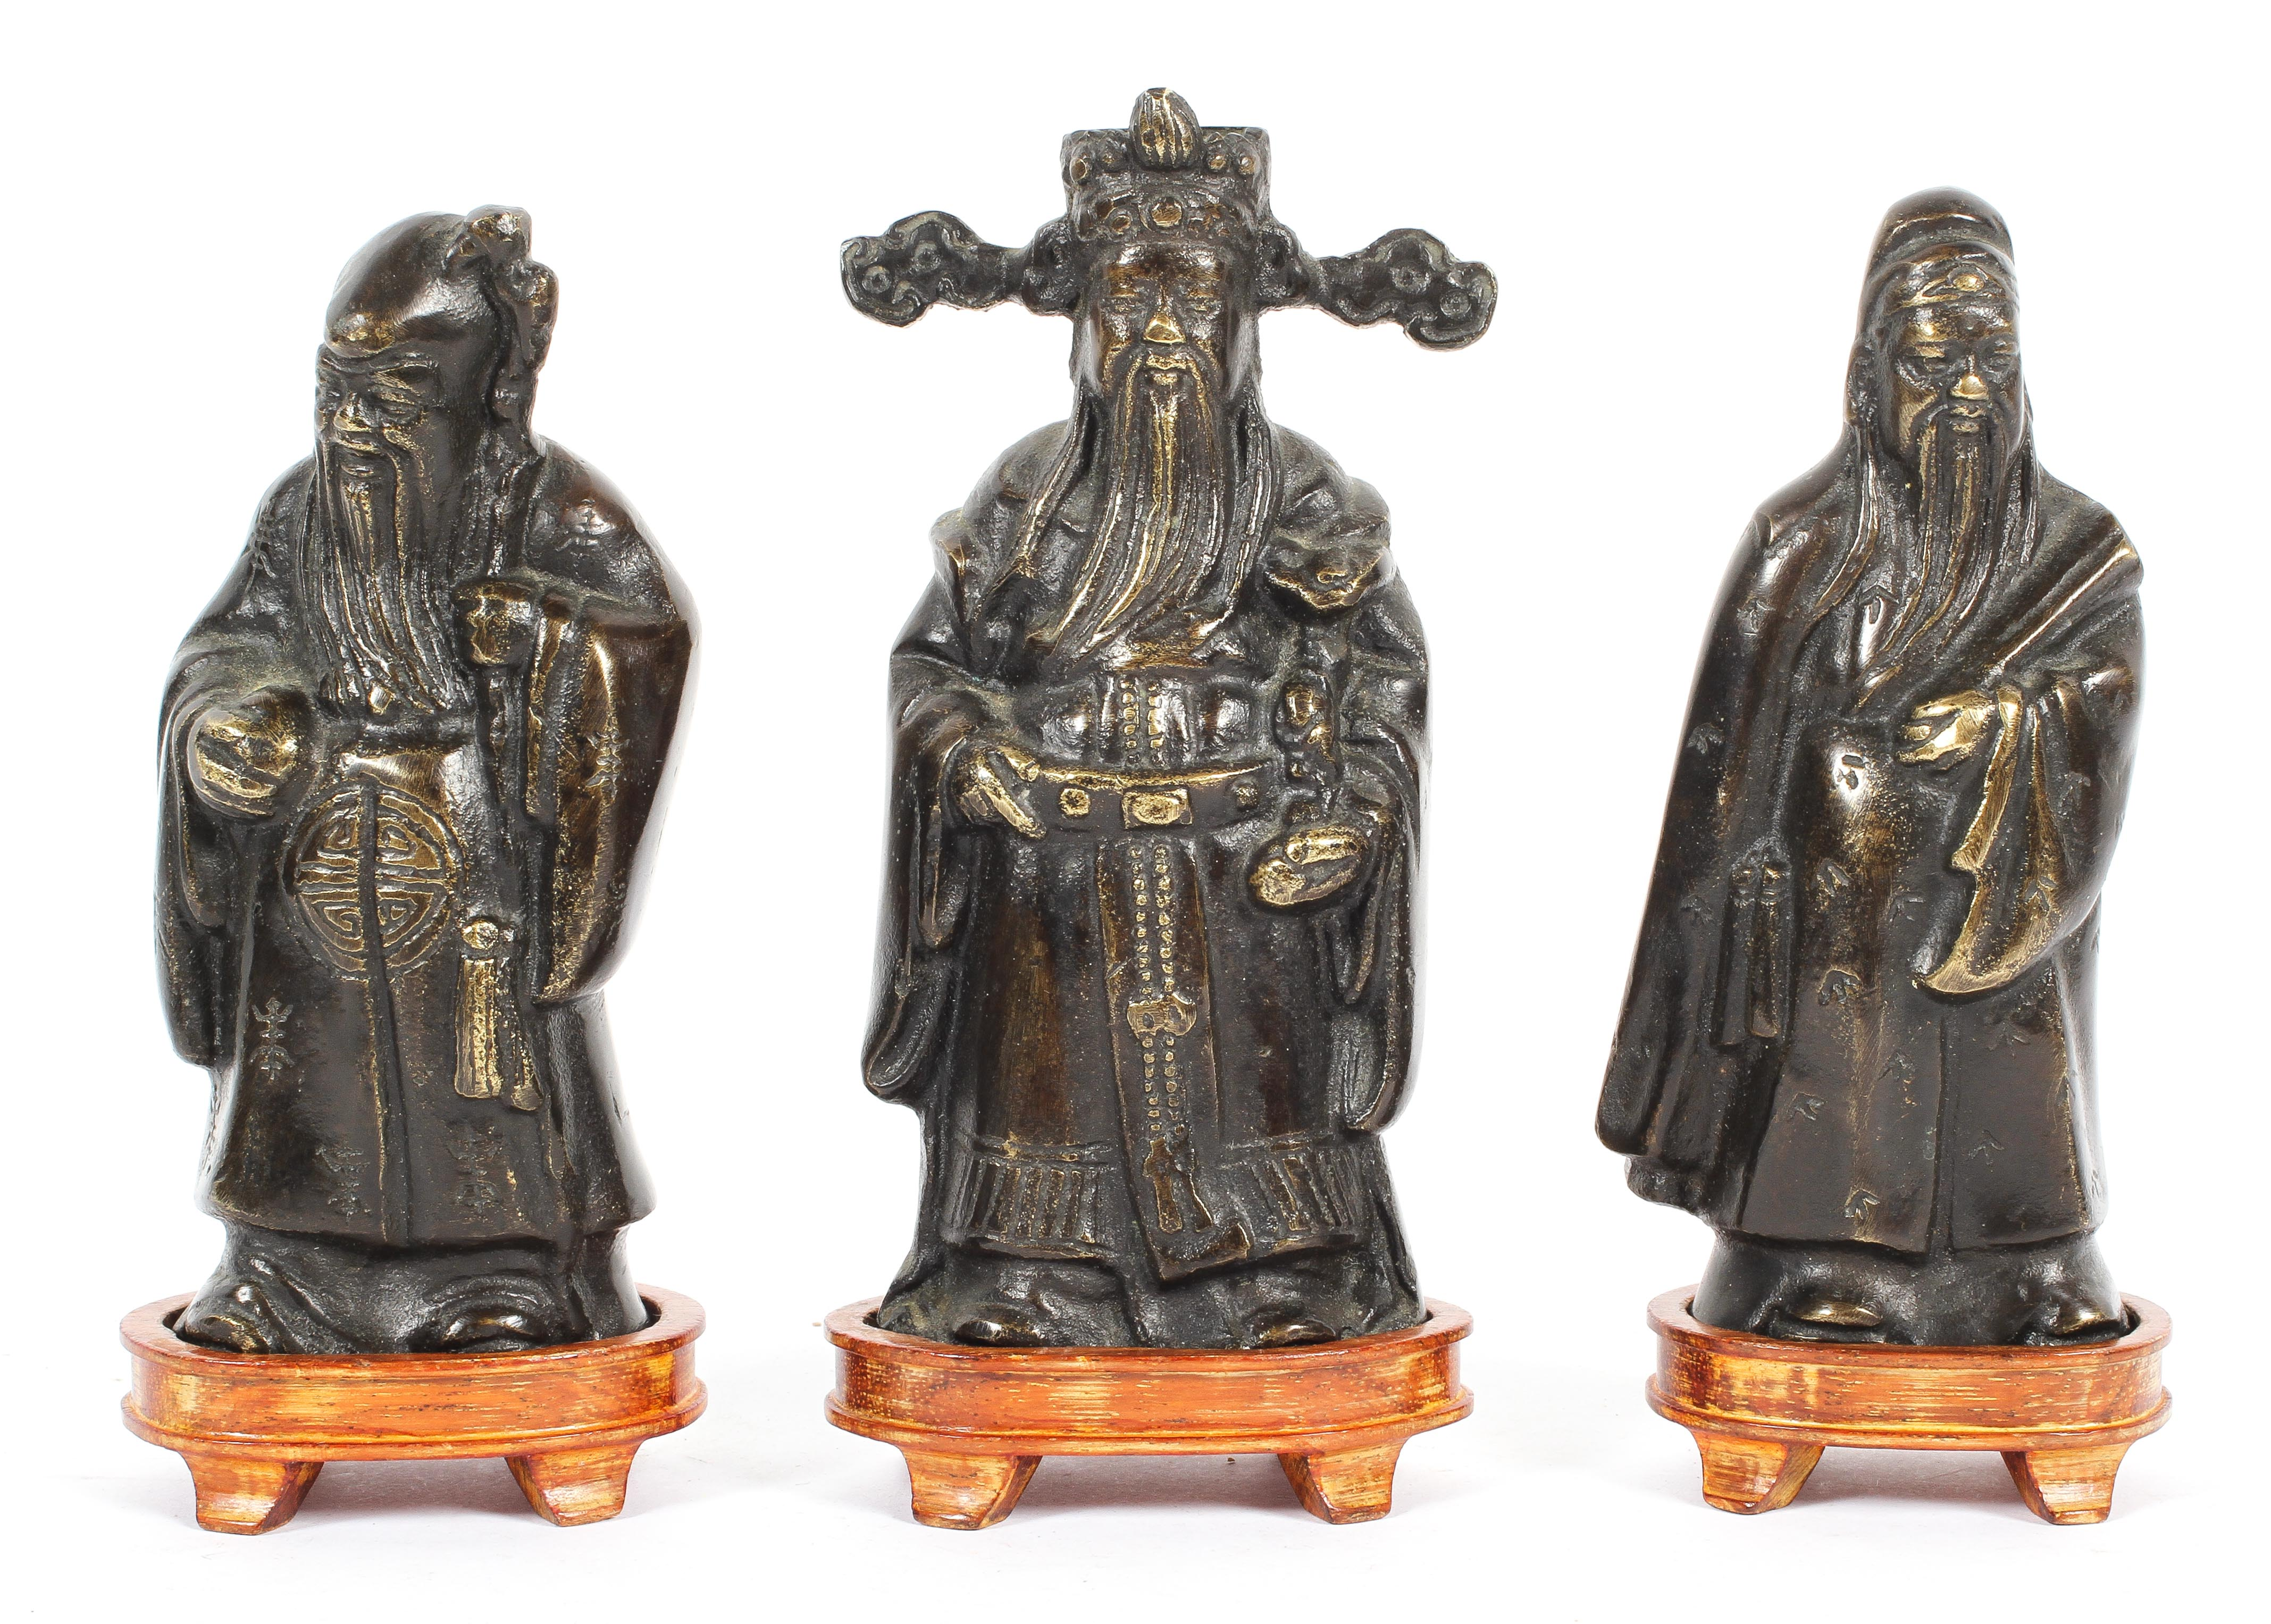 Three Chinese bronze figures of Immortals, on wooden stands, 20th century,